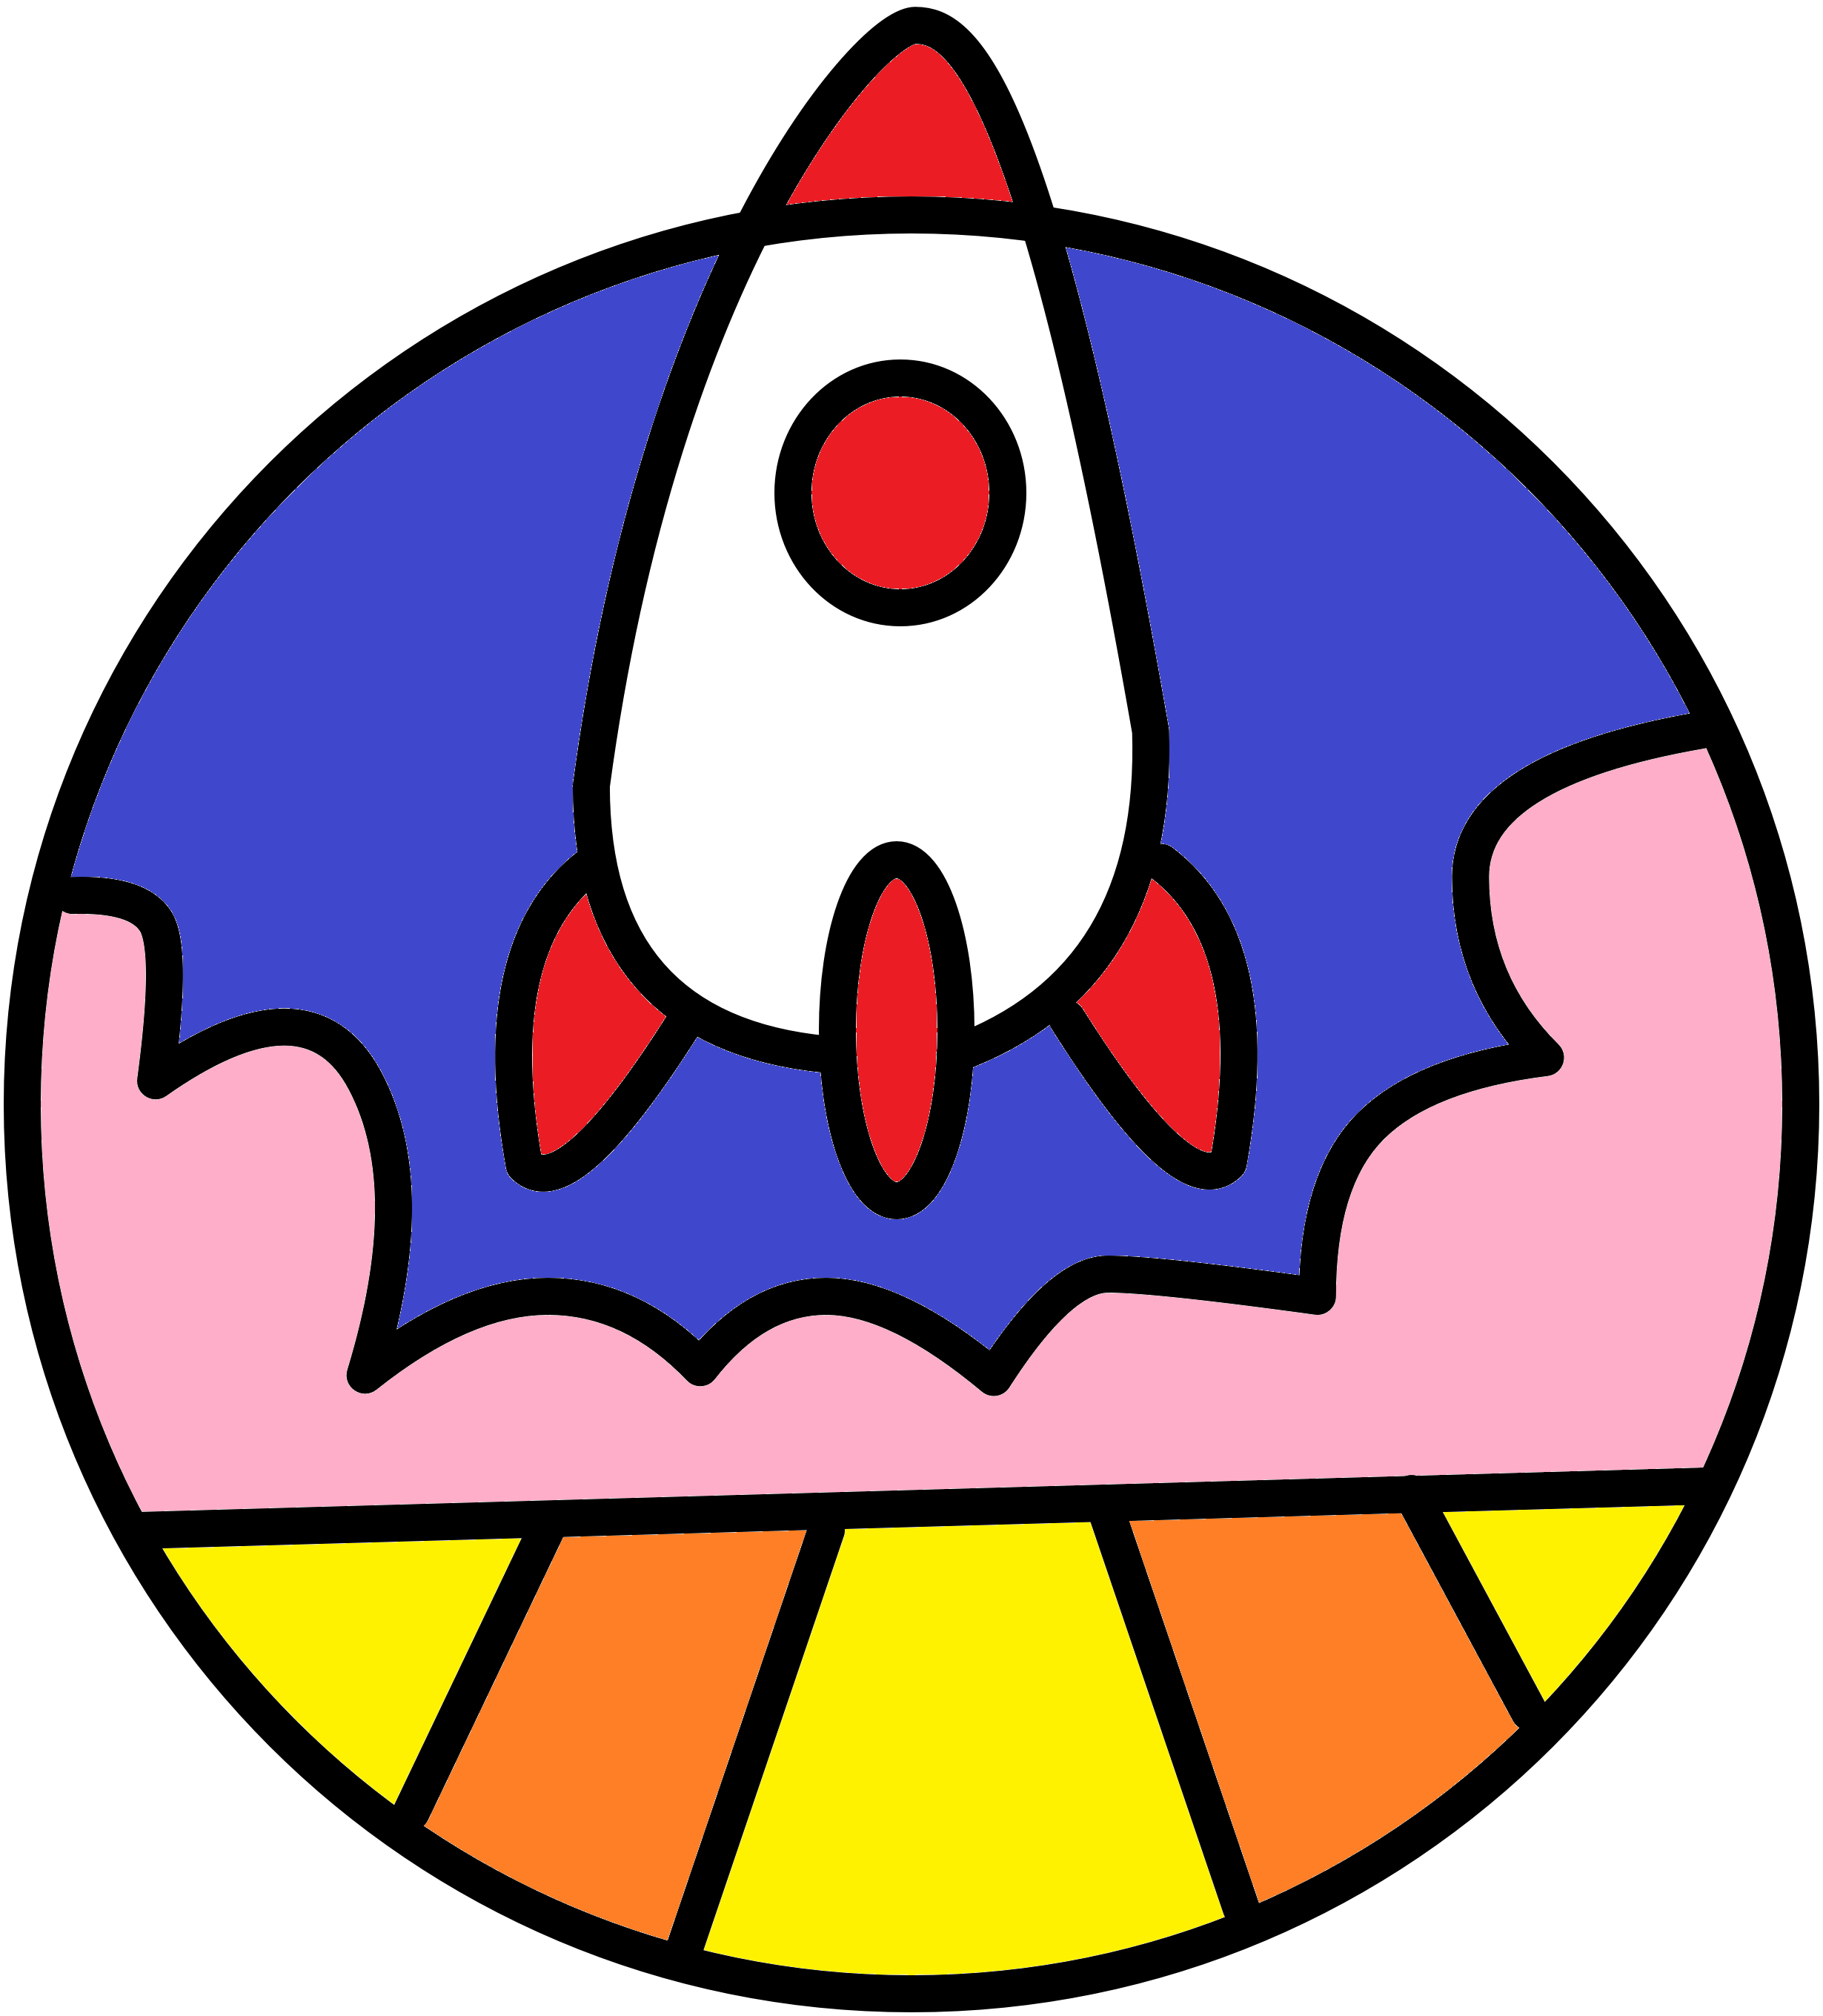 The rocket symbolises how to launch your stratup